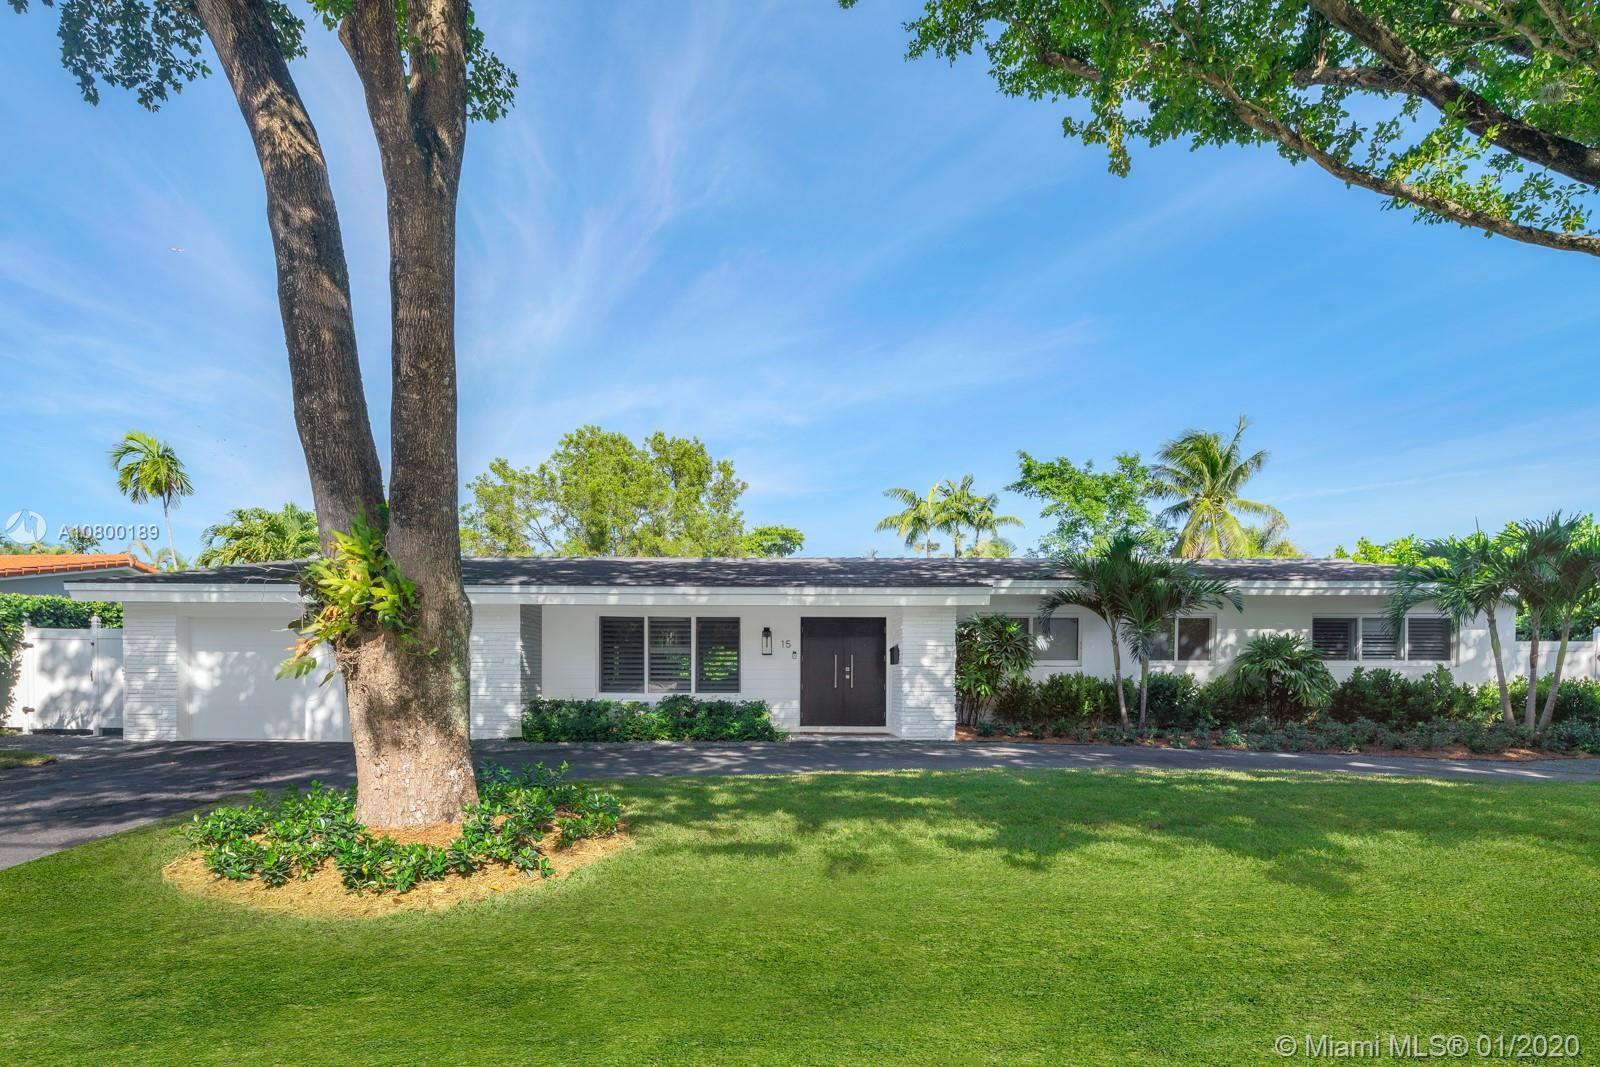 Pristine and spacious home in highly desirable neighborhood of Sunrise Point. Substantially remodele